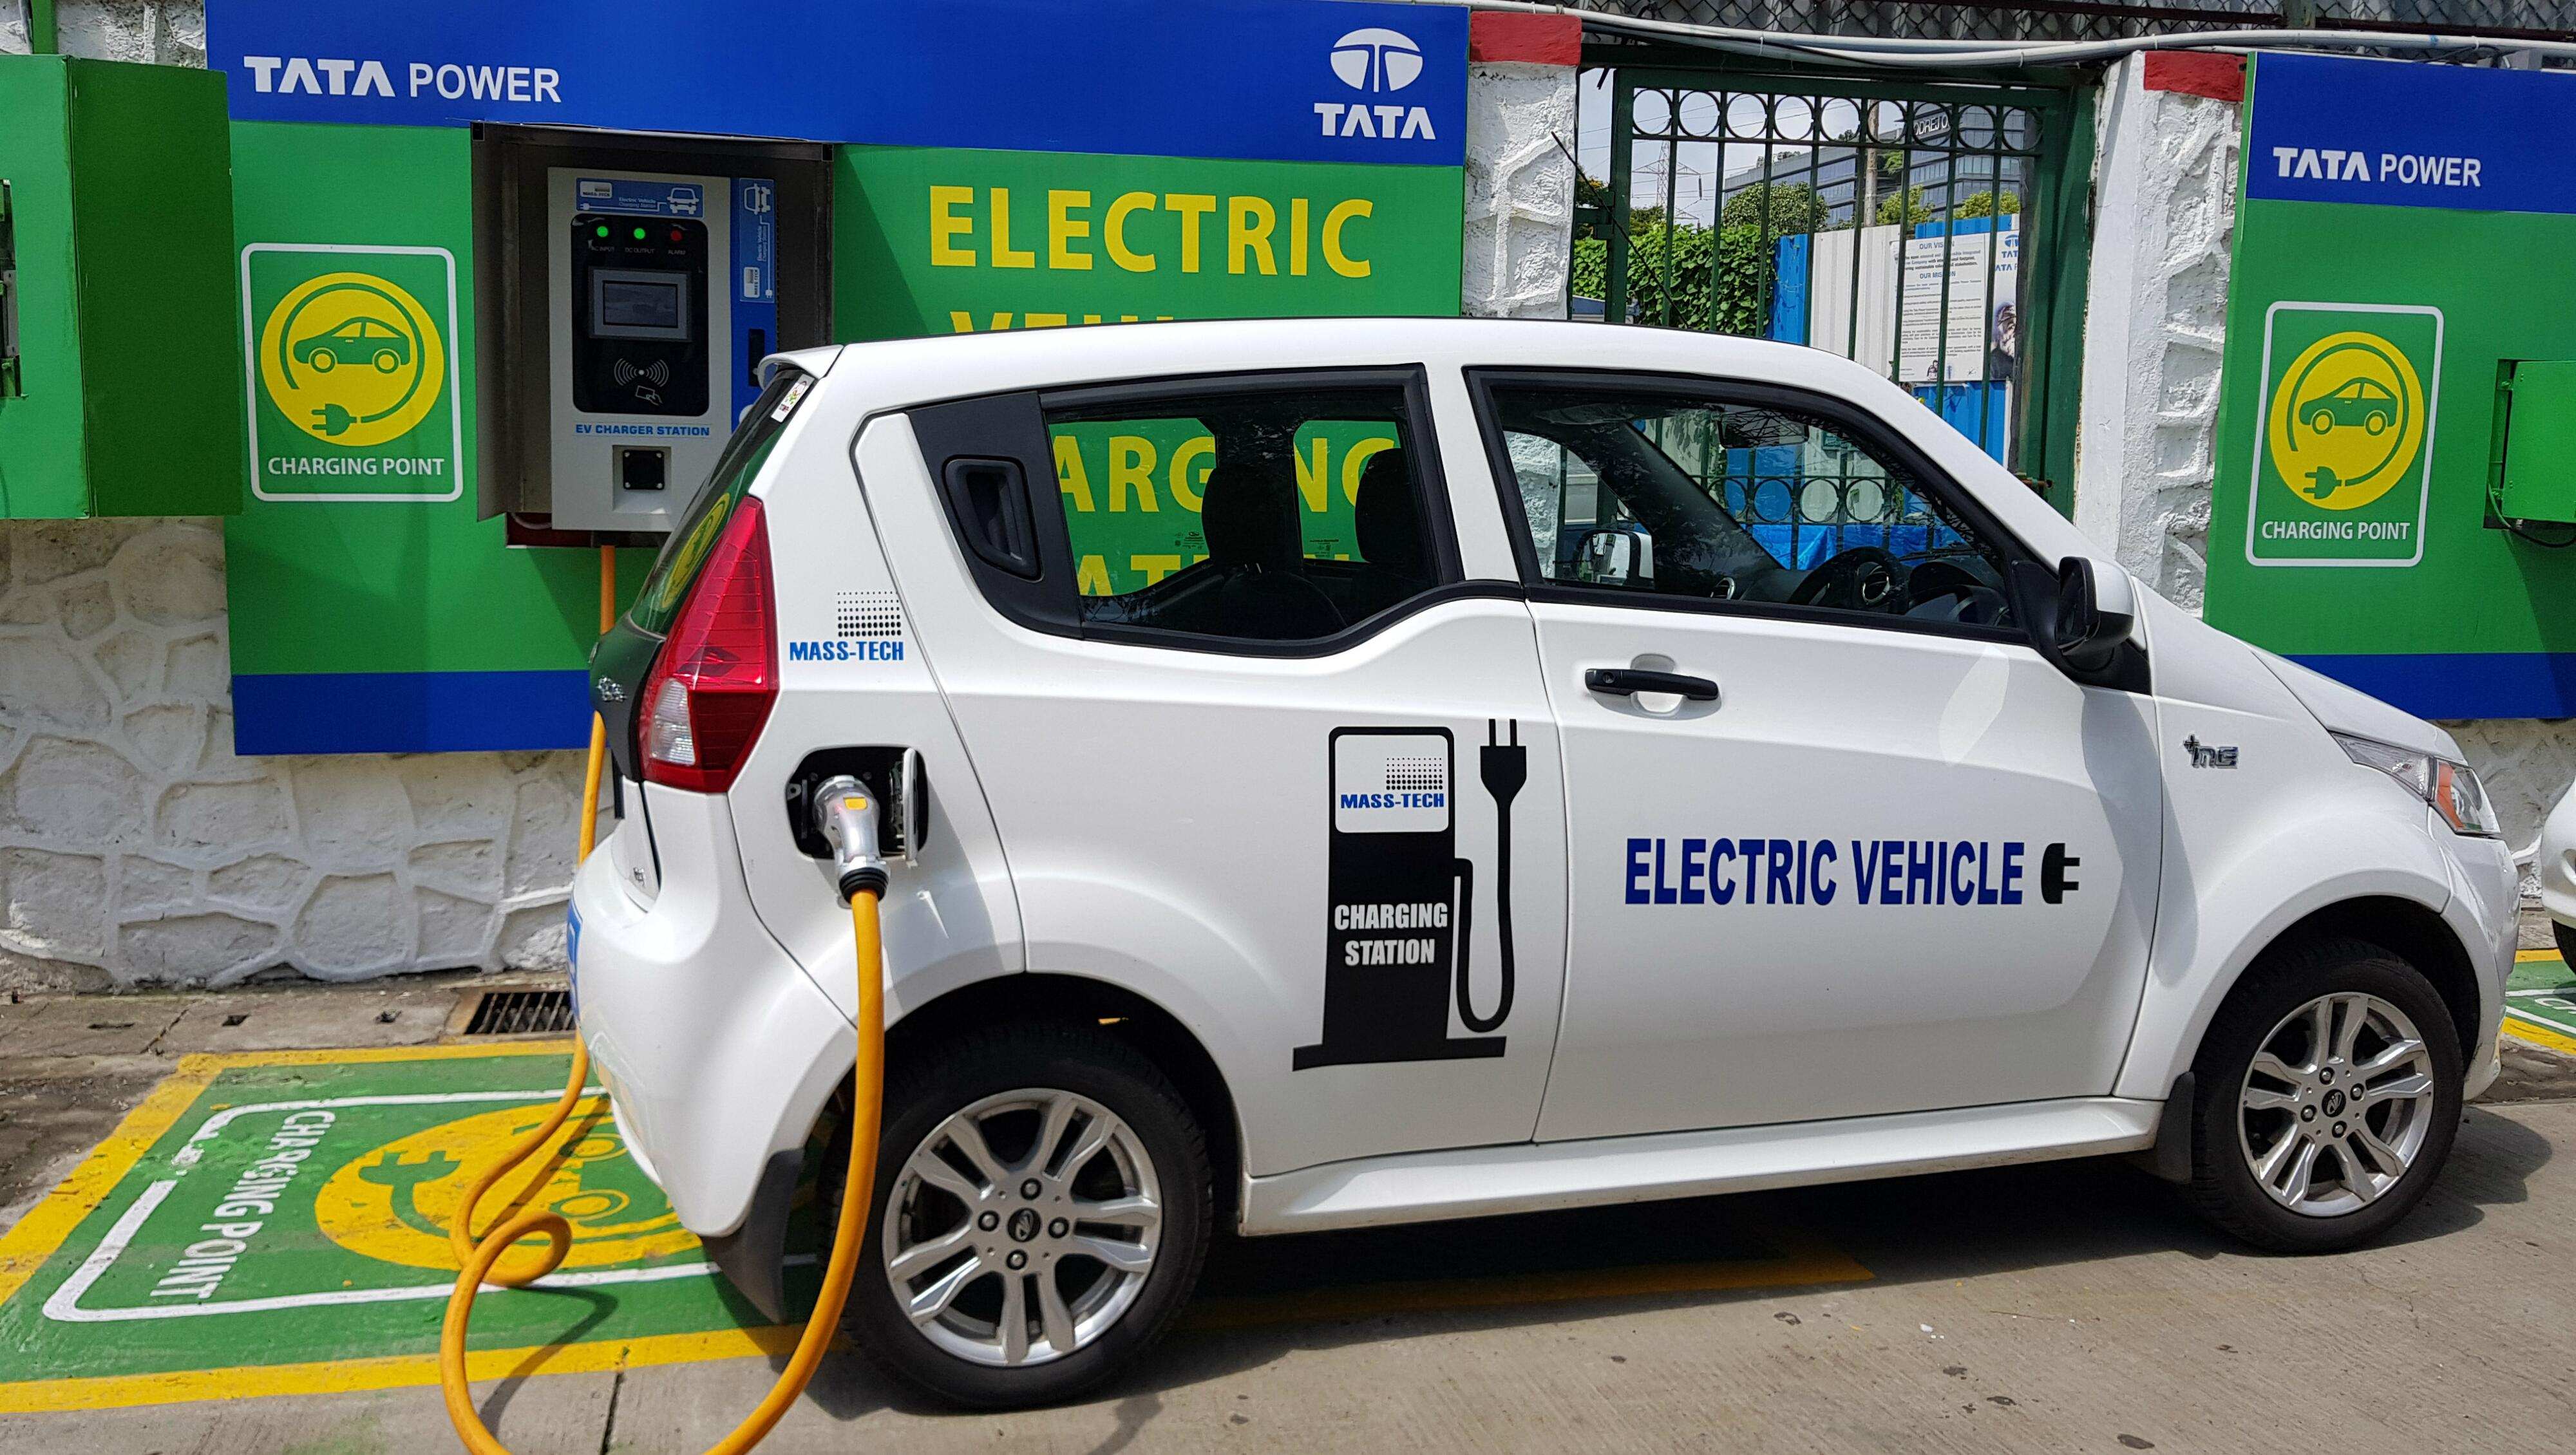 Here's why Tata is setting up EV charging stations